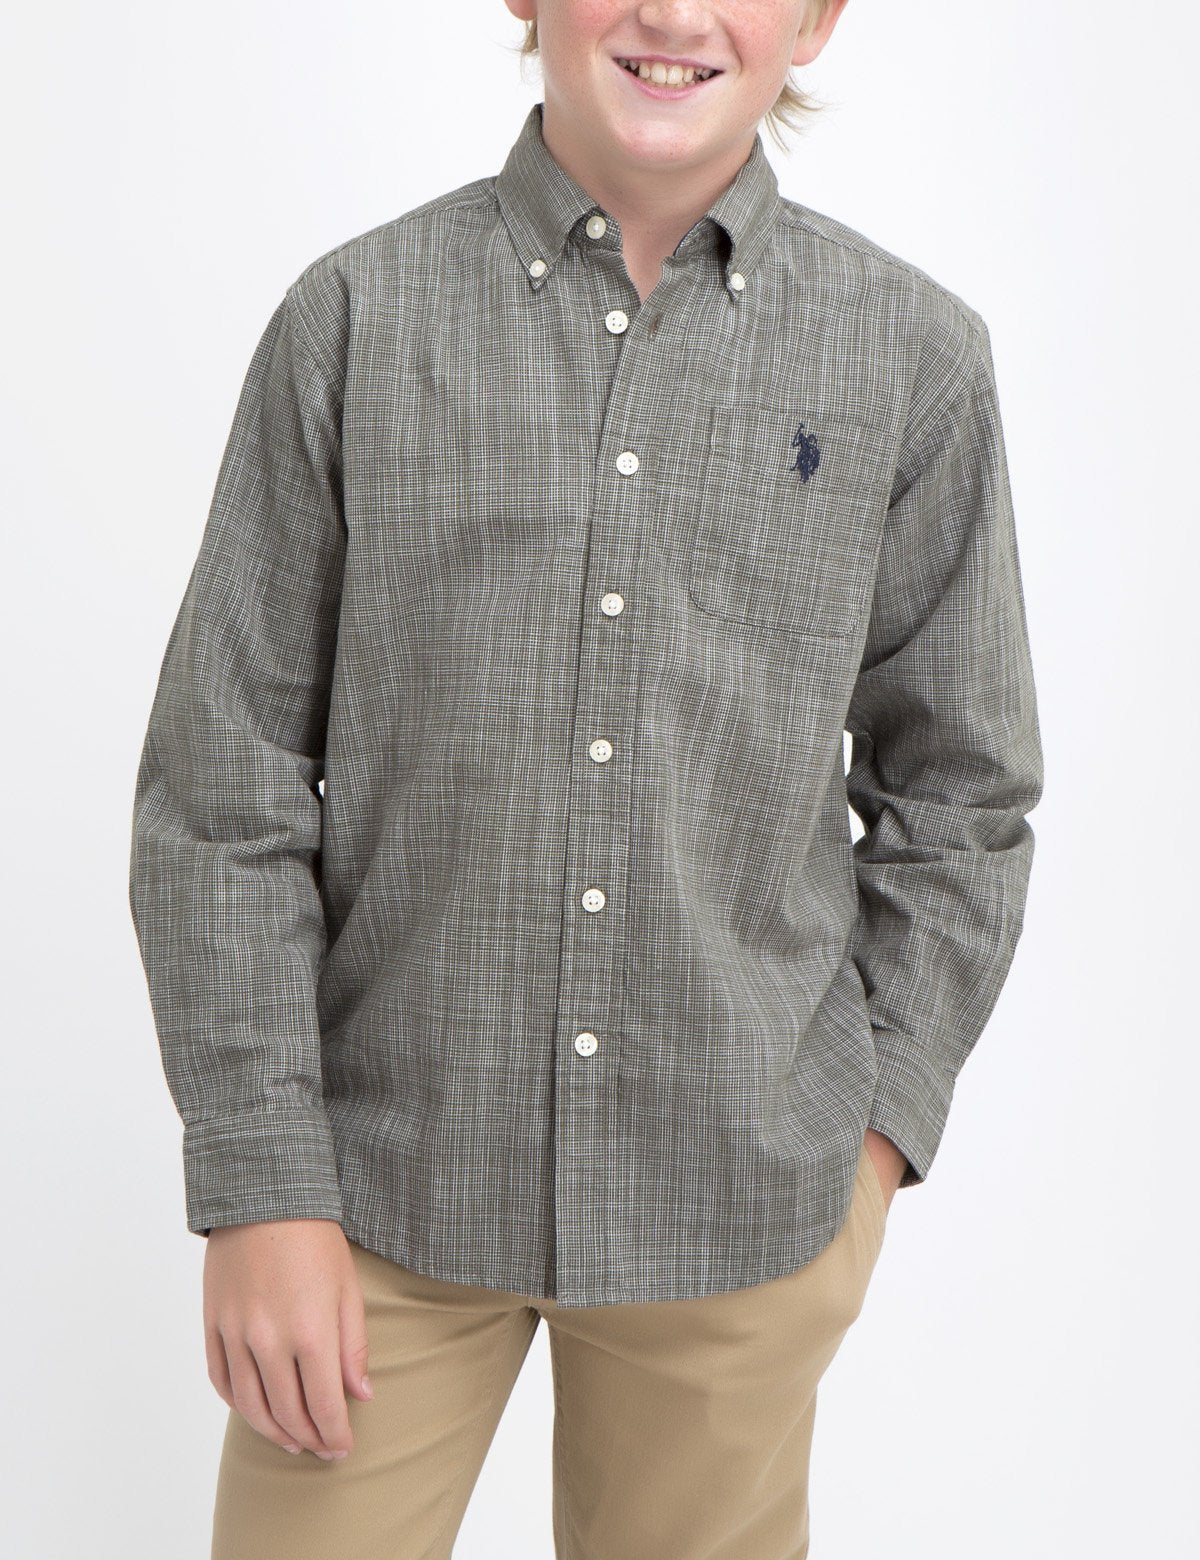 BOYS DOBBY SHIRT - U.S. Polo Assn.